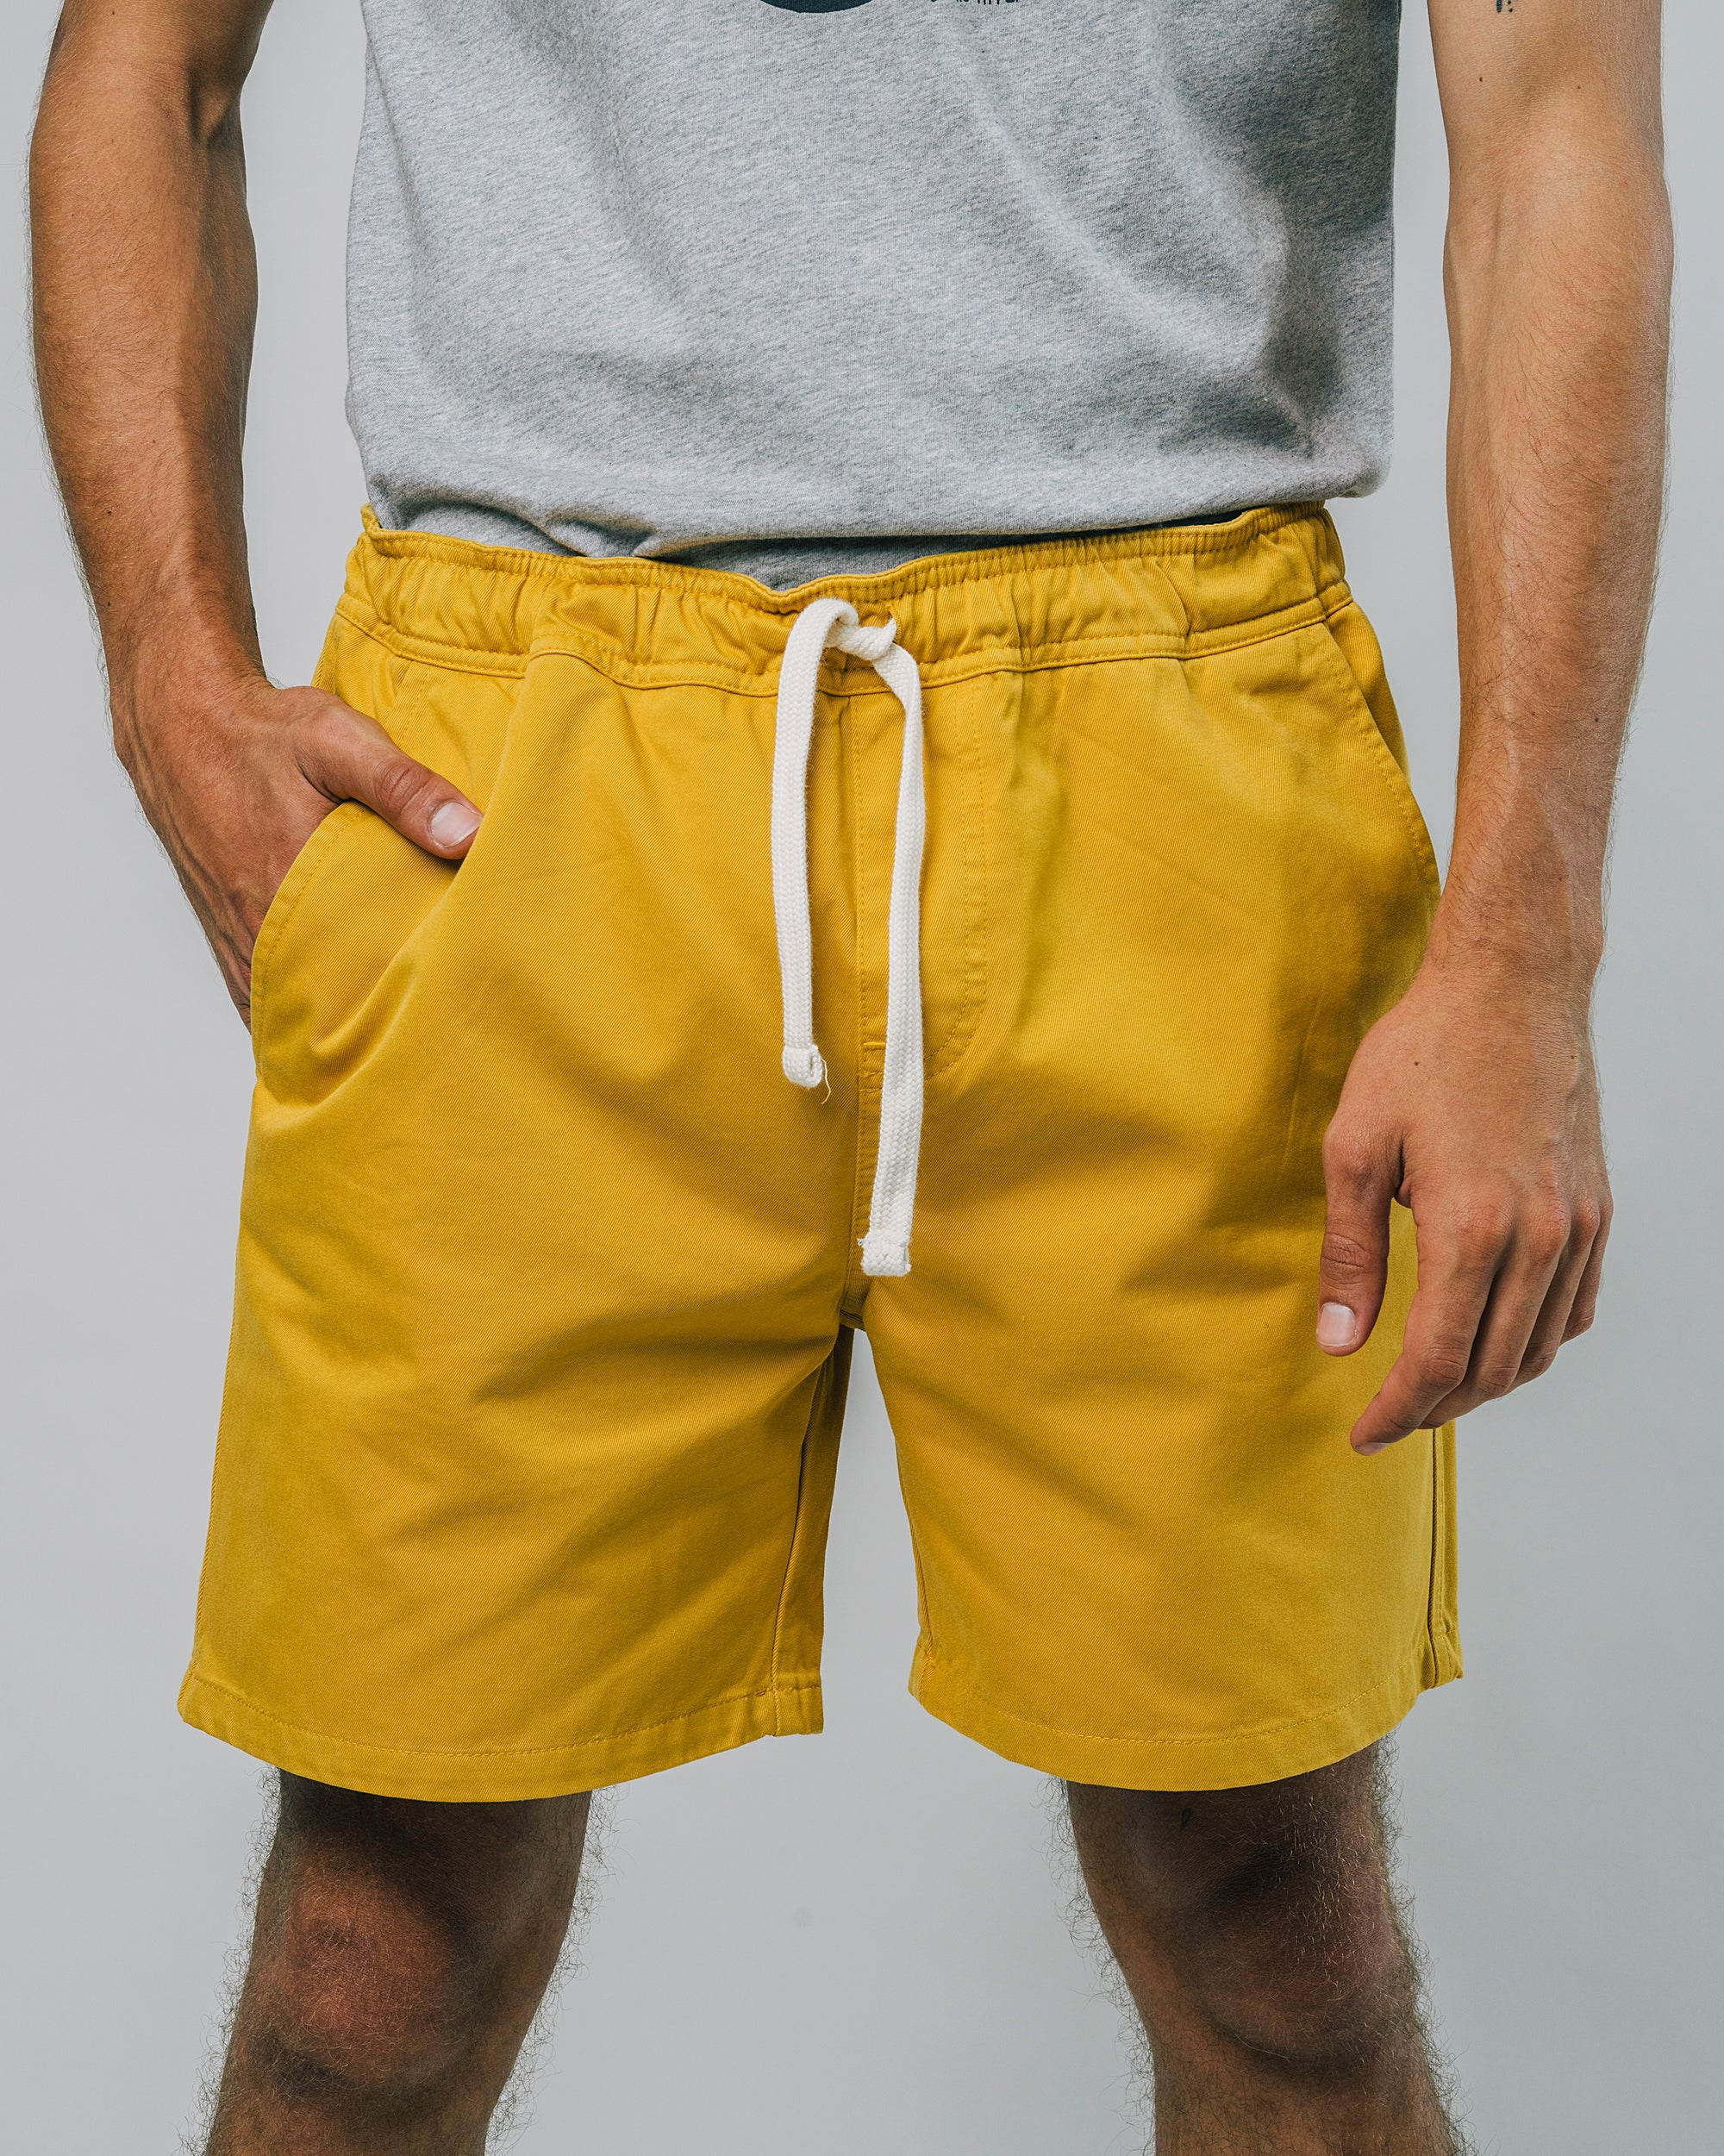 Discover our Narciso Summer Shorts made of Organic Cotton. Fair & sustainable Shorts for Men by Brava Fabrics, ethically made in Portugal. ✓ Fair ✓ Eco